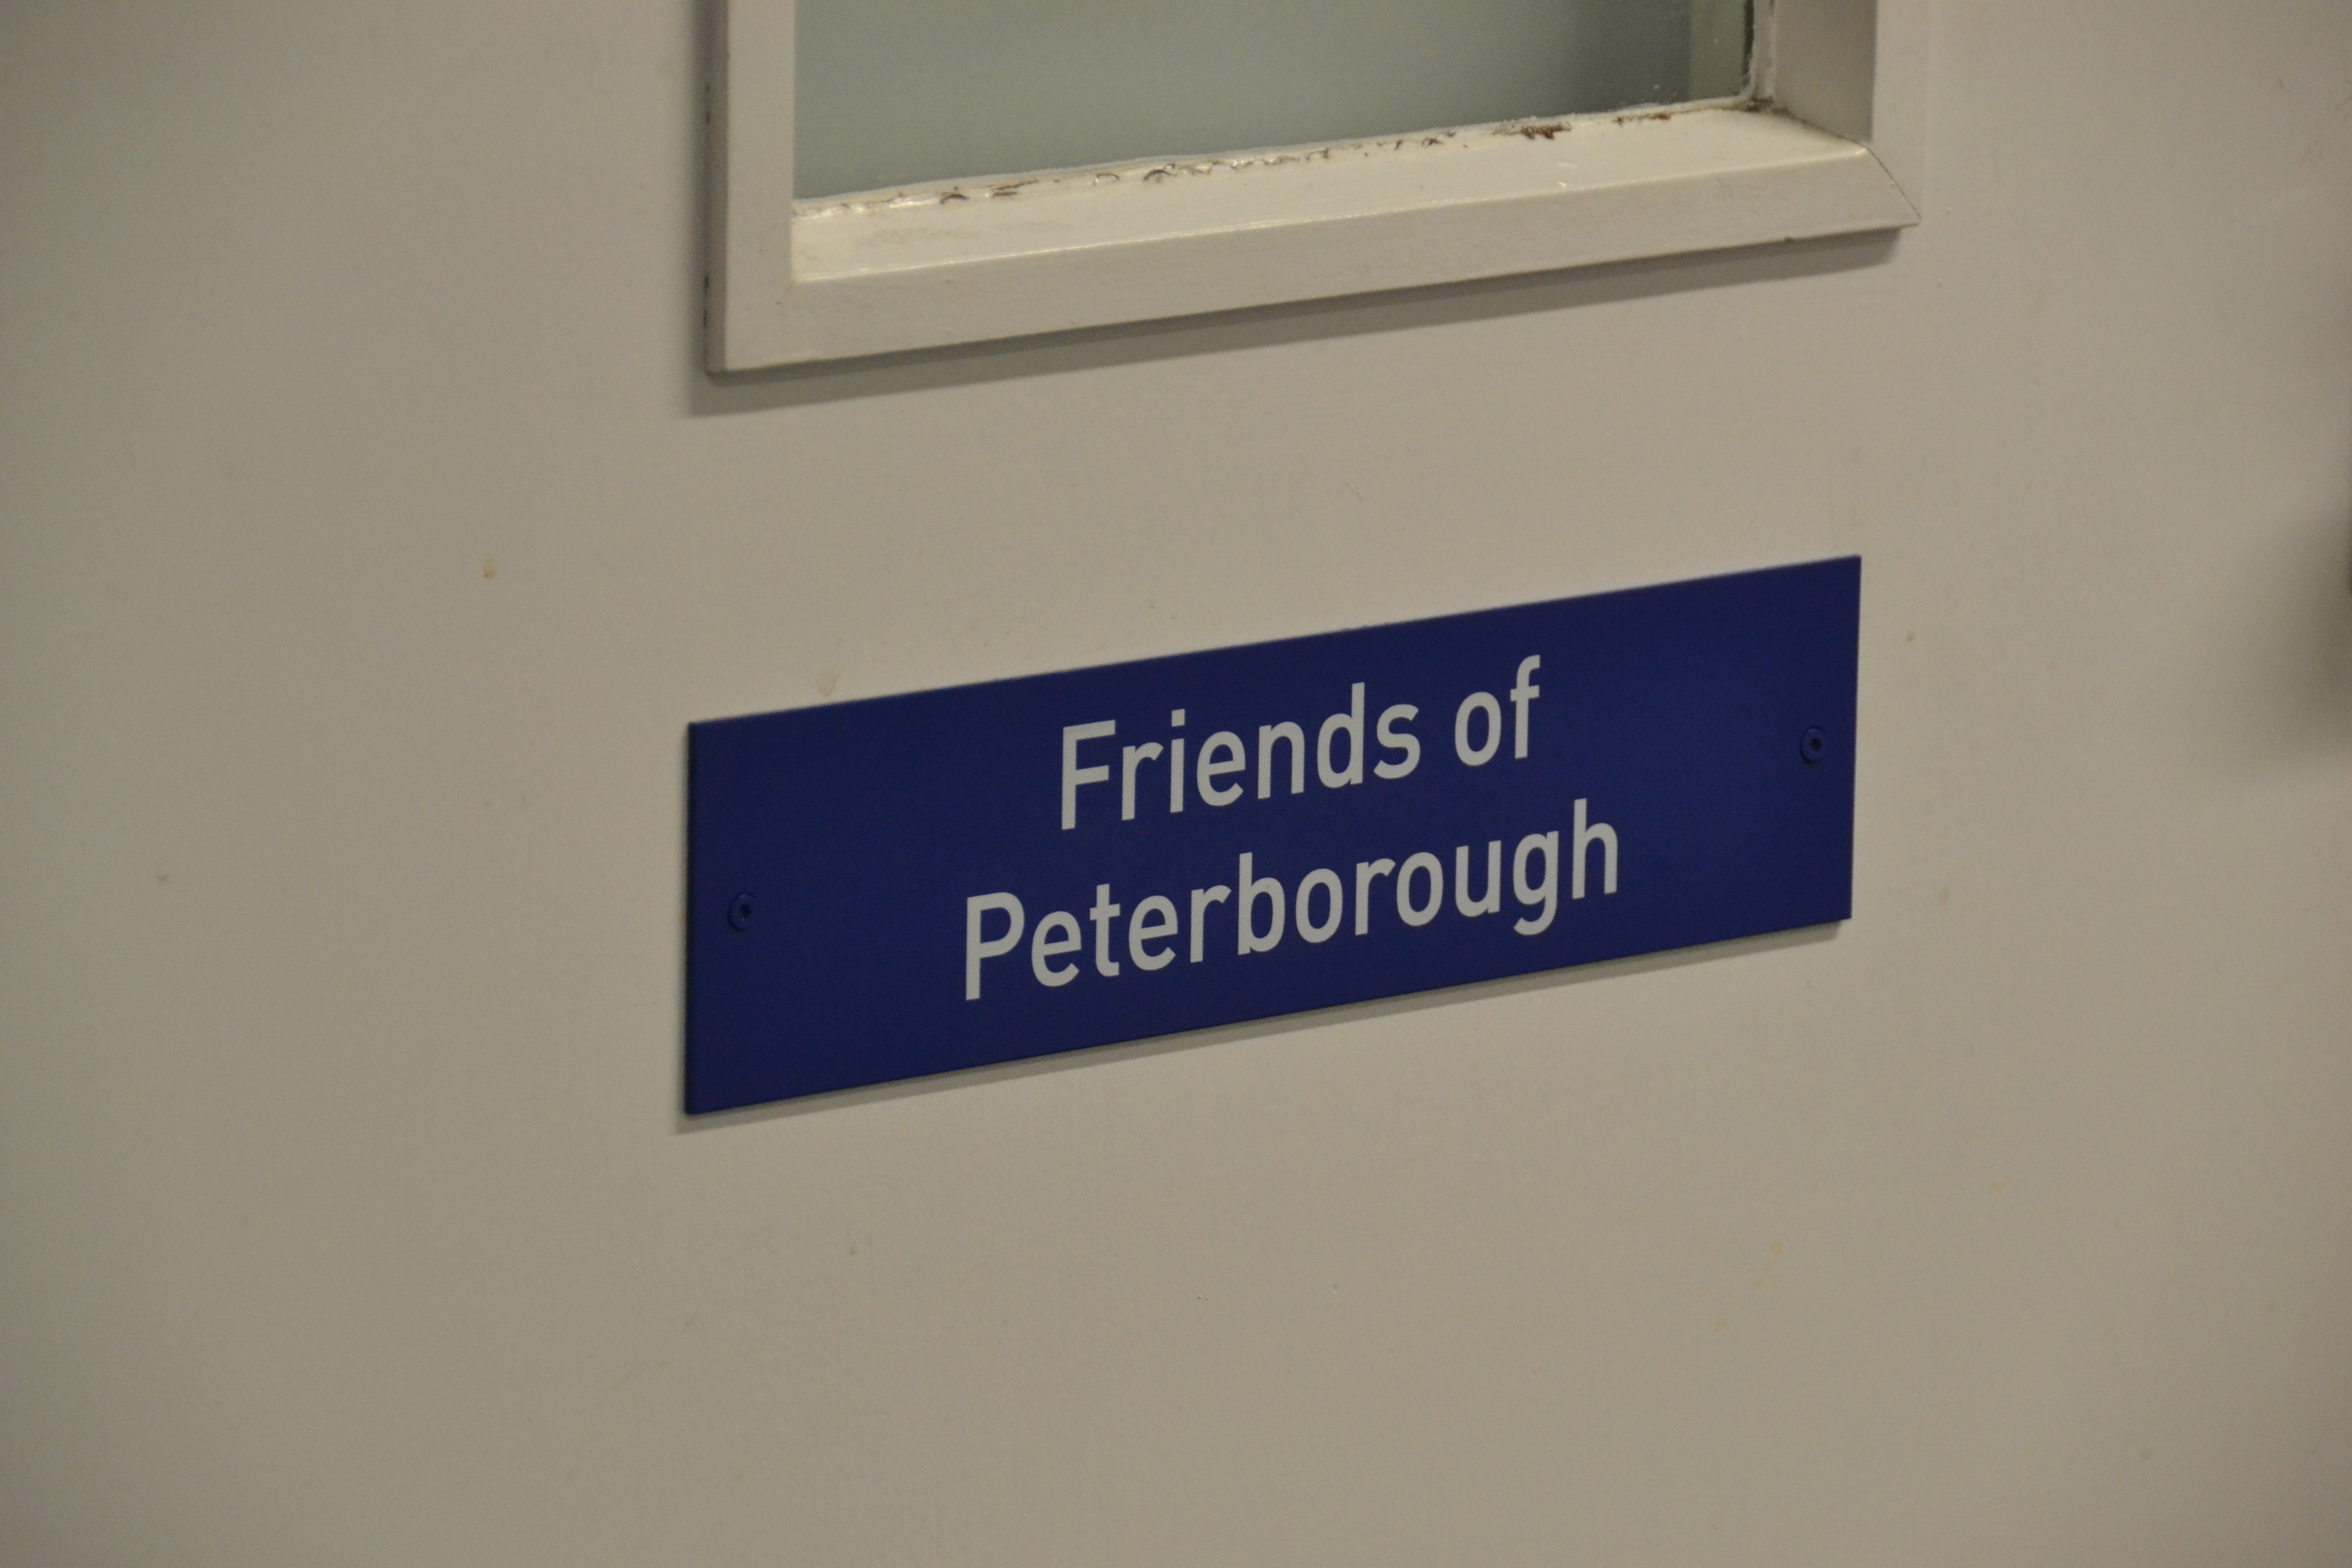 Office door sign that reads: Friends of Peterborough.